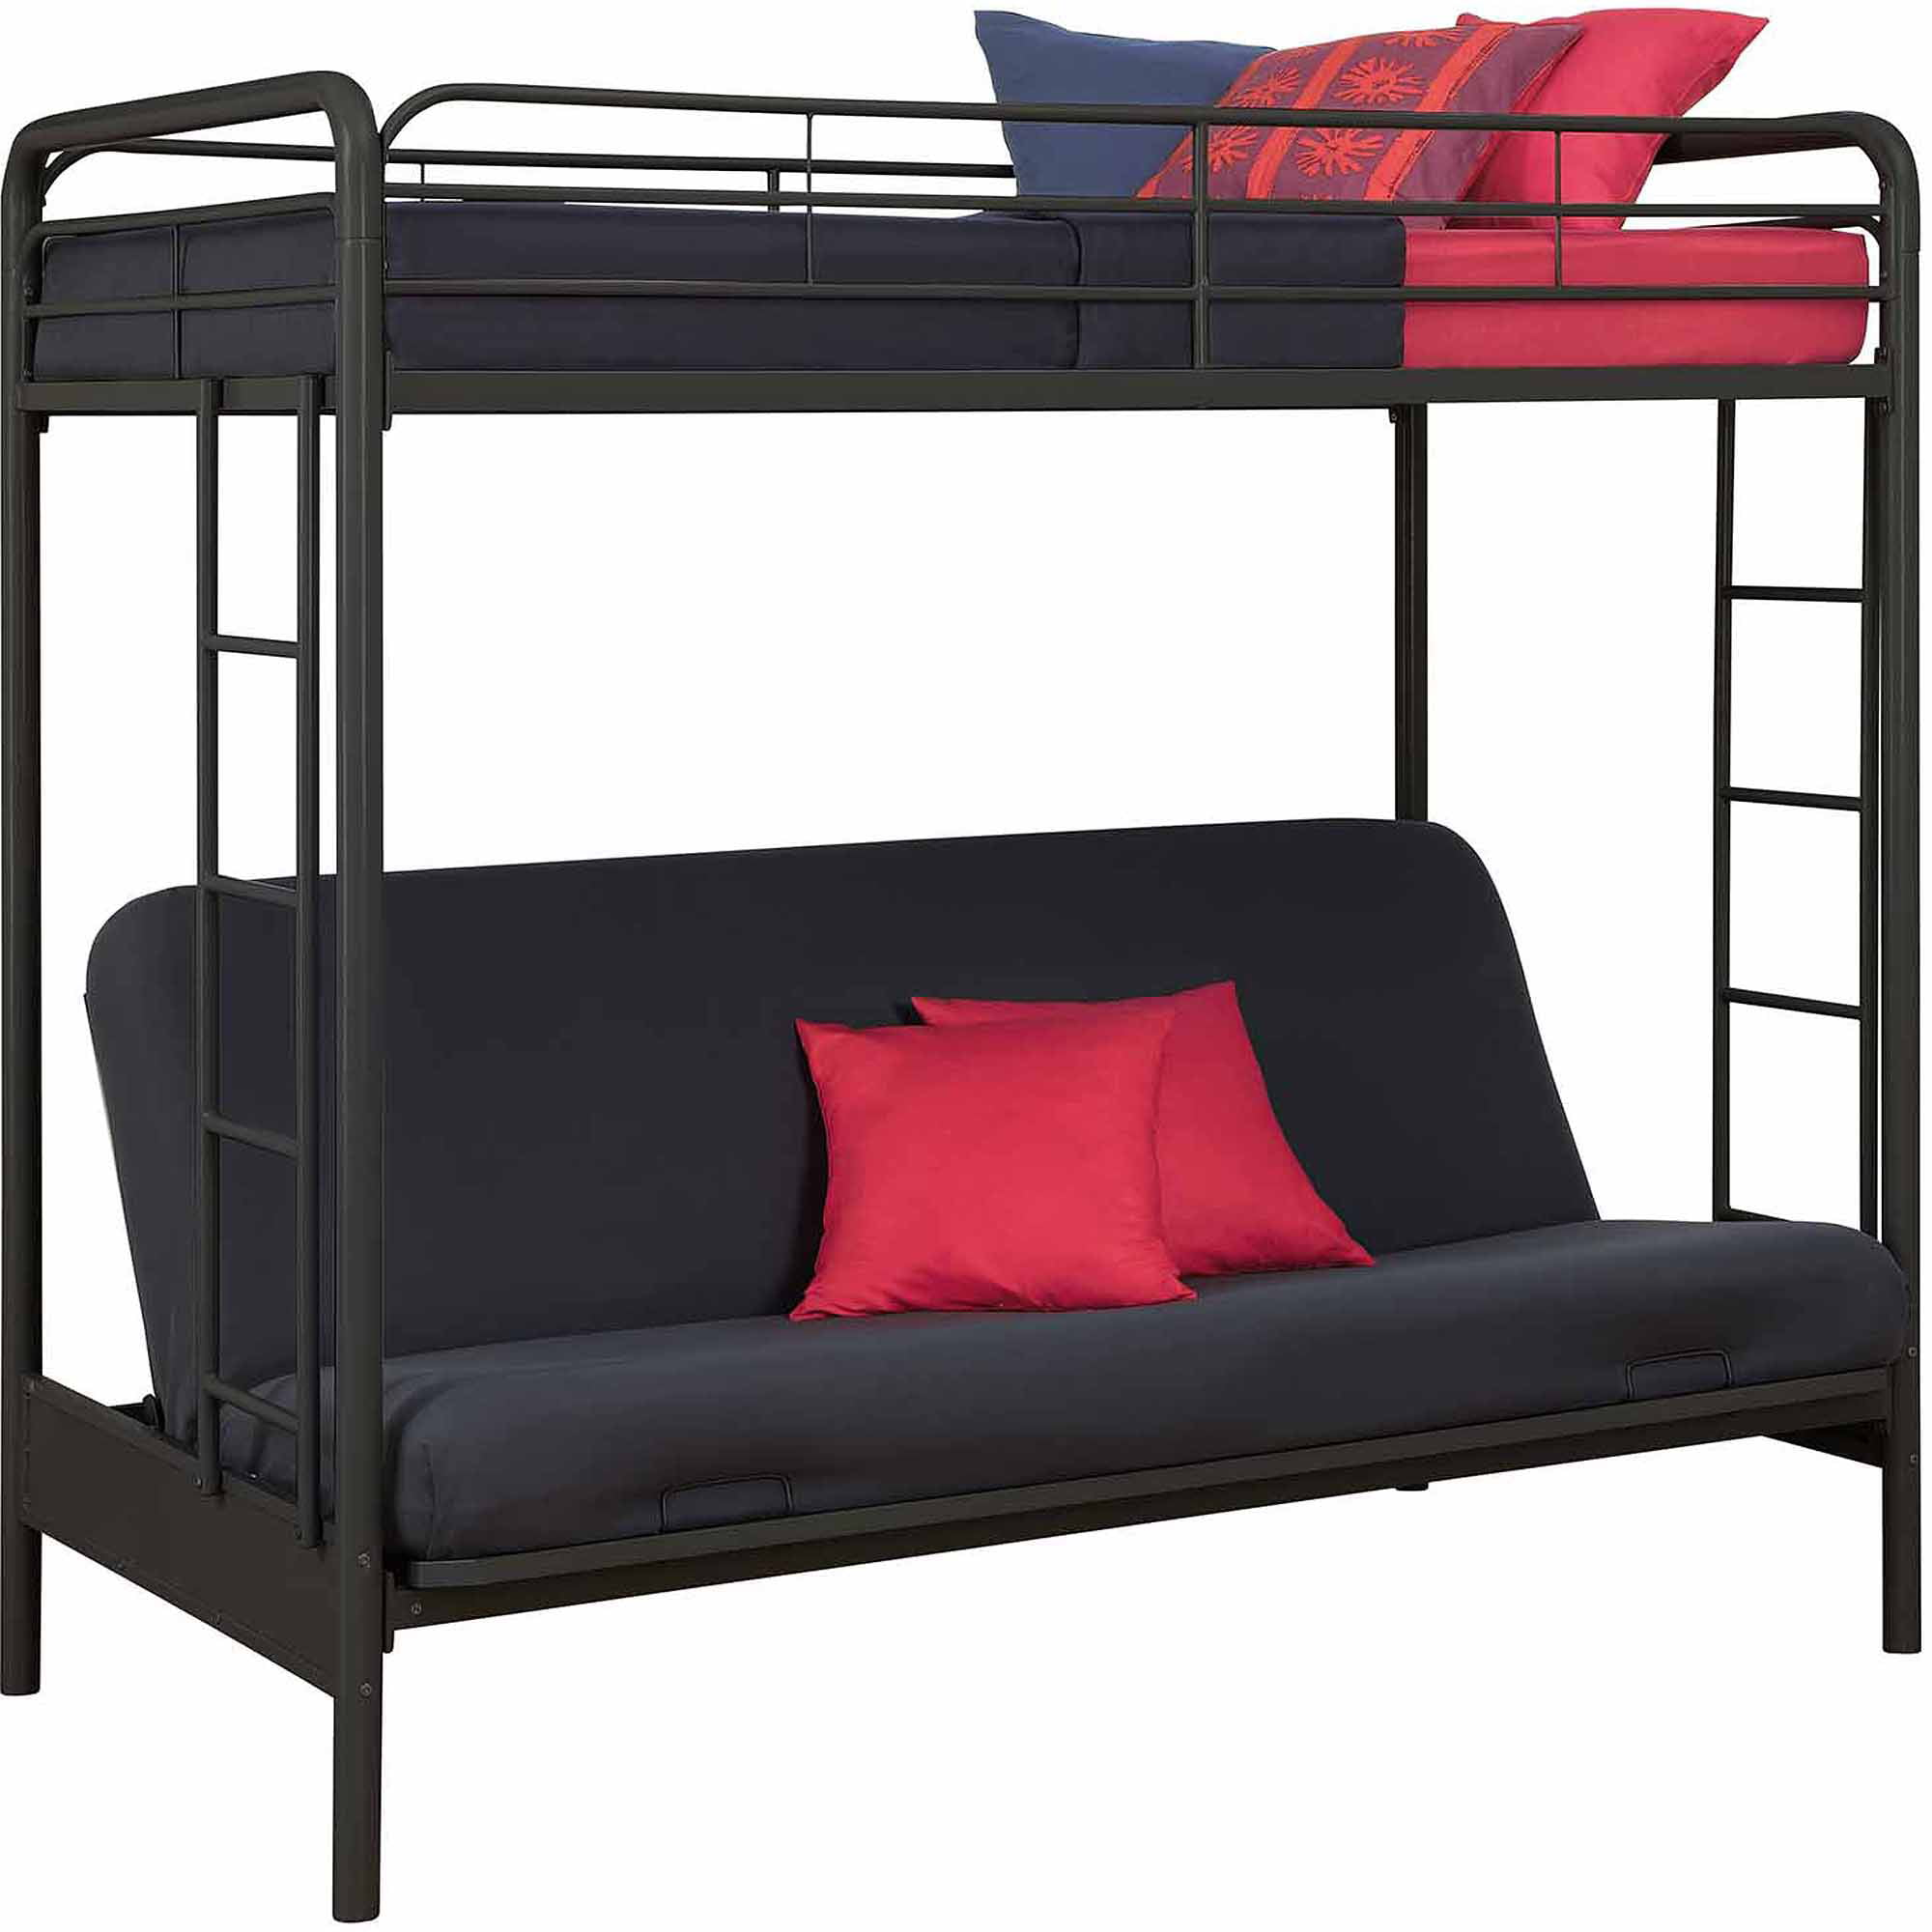 dorel home products twin over futon low loft bed with built in ladder   walmart   dorel home products twin over futon low loft bed with built in      rh   walmart